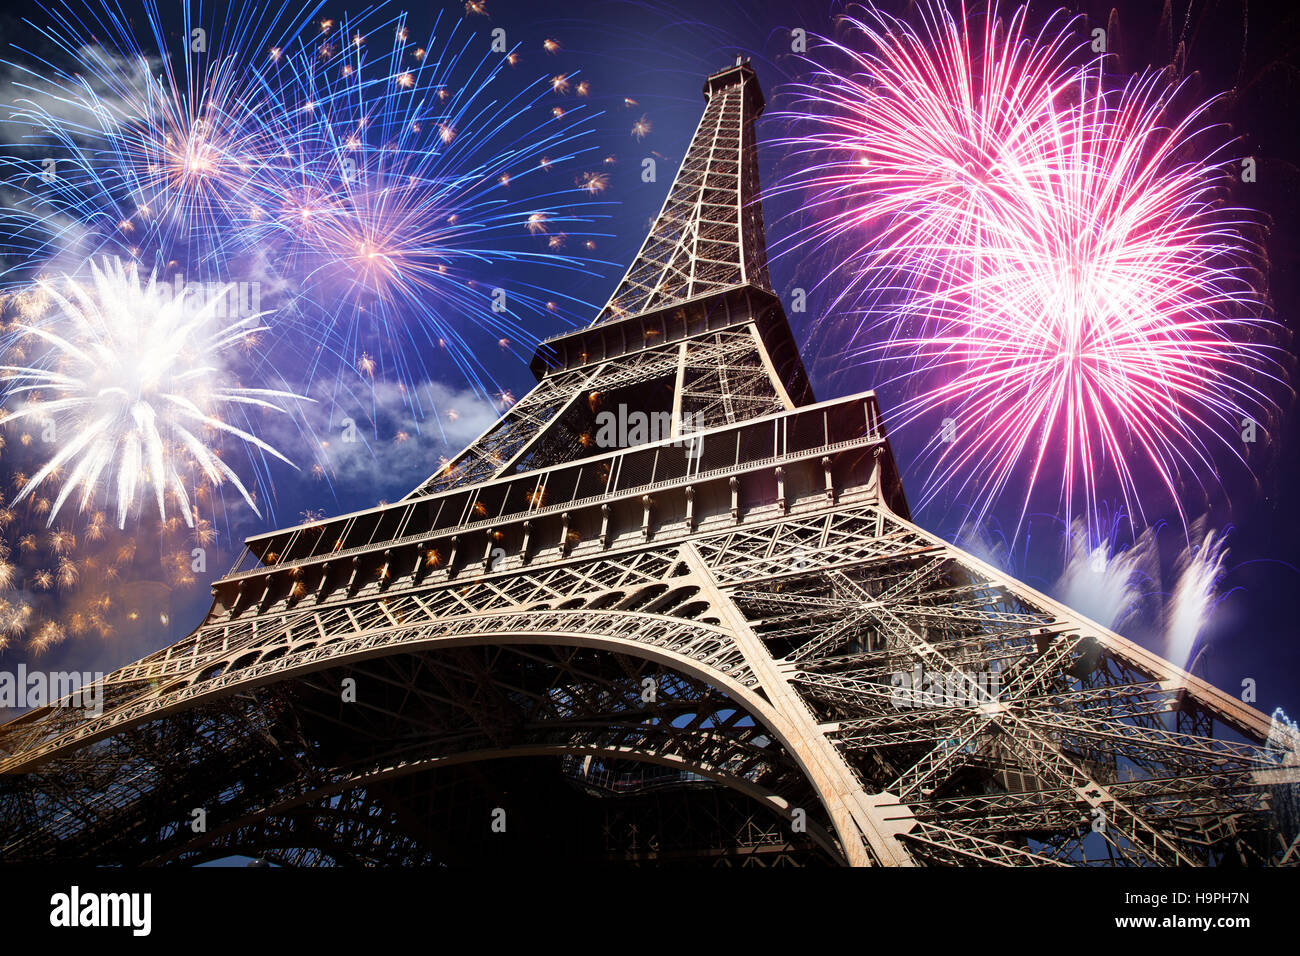 Eiffel tower with fireworks, celebration of the New Year in Paris, France - Stock Image